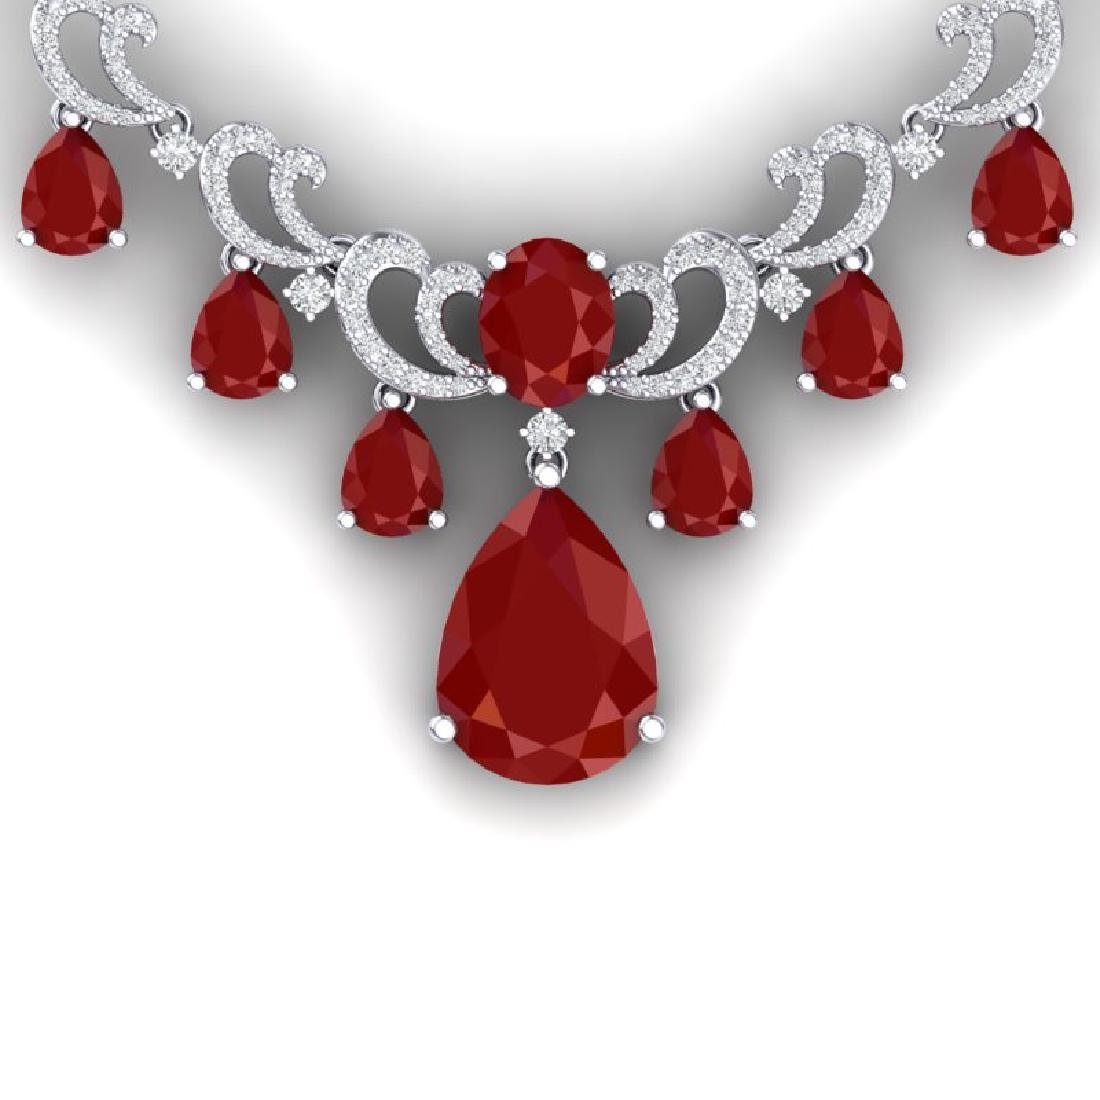 36.85 CTW Royalty Ruby & VS Diamond Necklace 18K White